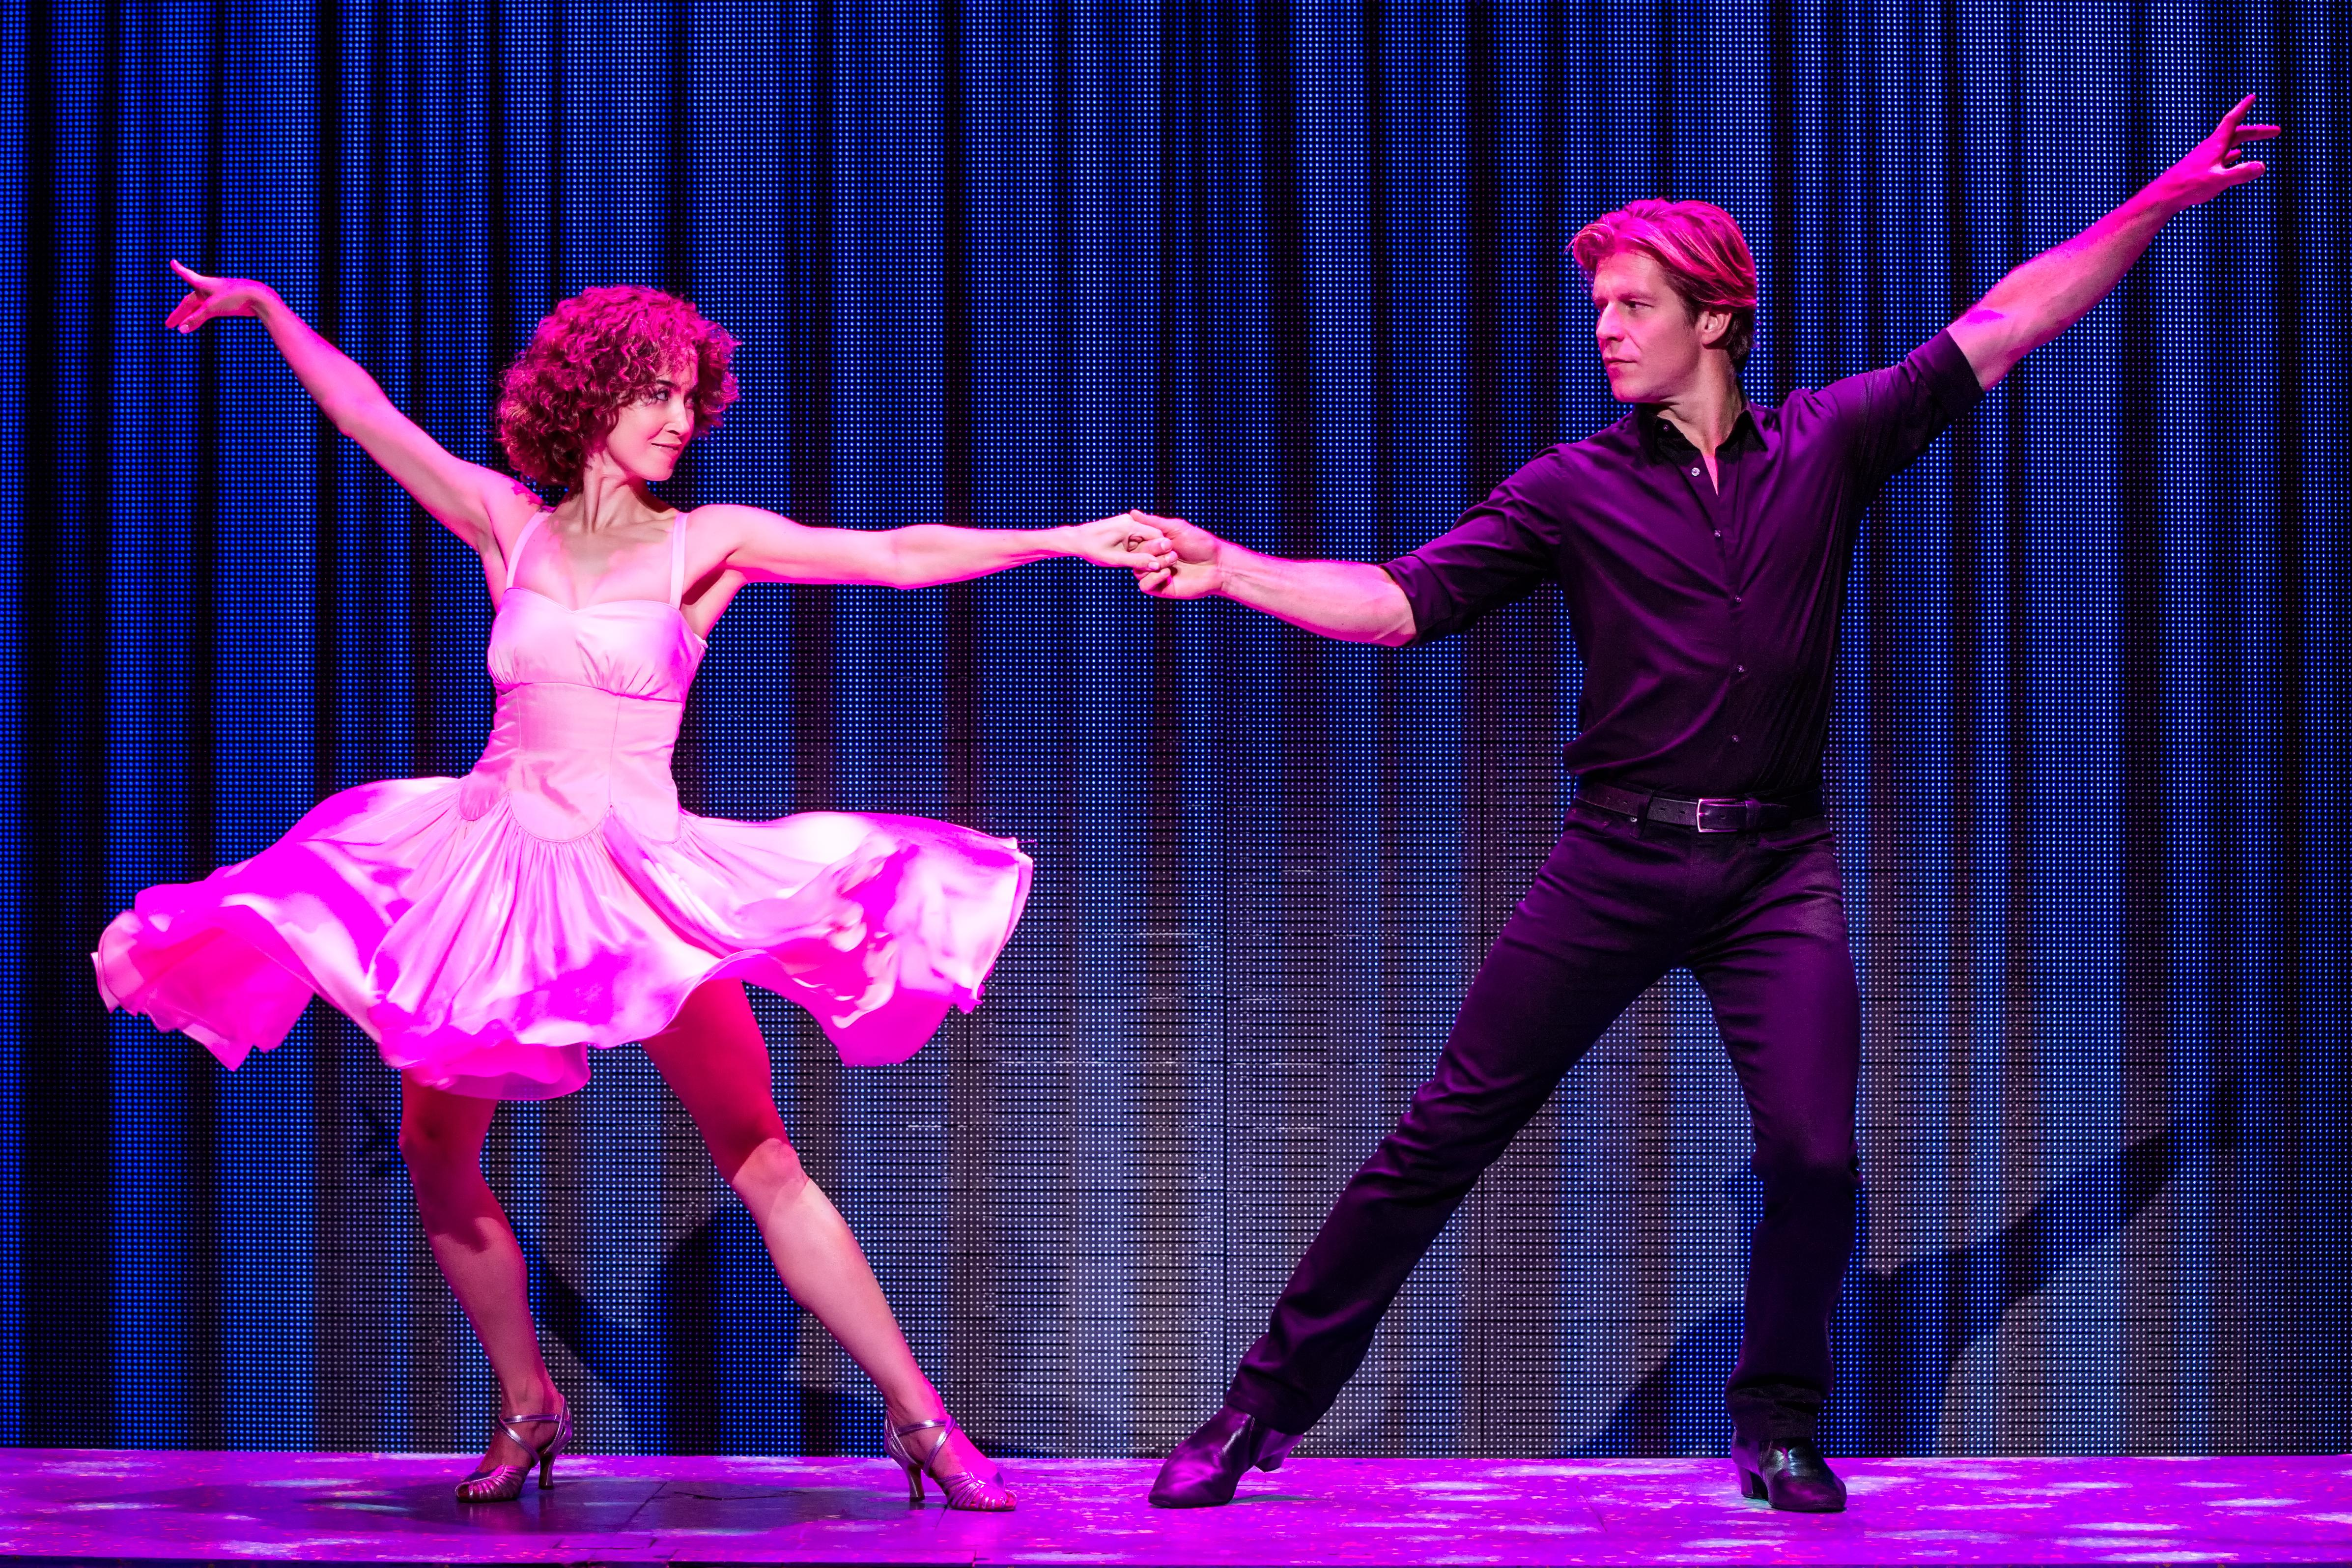 BWW Review: DIRTY DANCING: THE CLASSIC STORY ON STAGE at Theater League